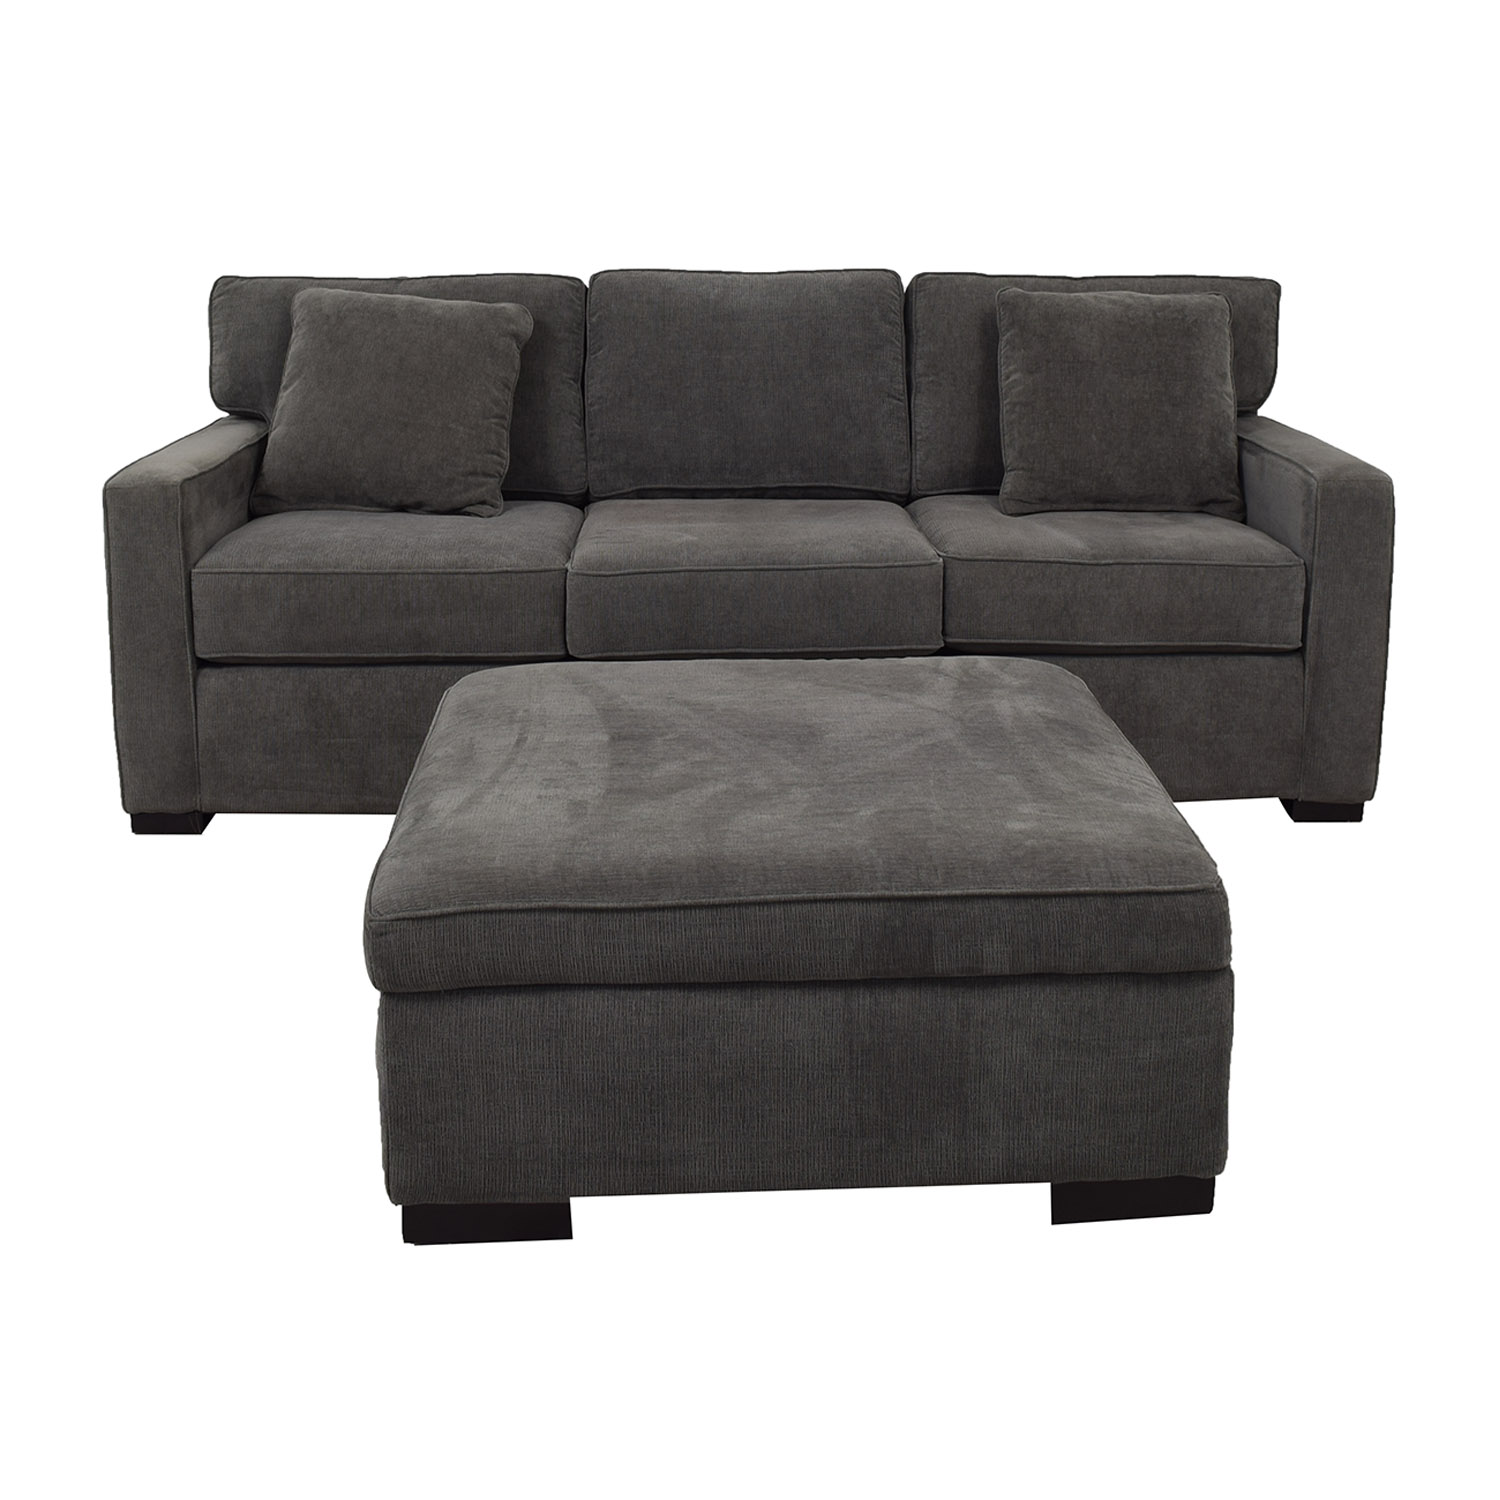 Macy's Macy's Radley Charcoal Grey Three-Cushion Sofa with Ottoman for sale